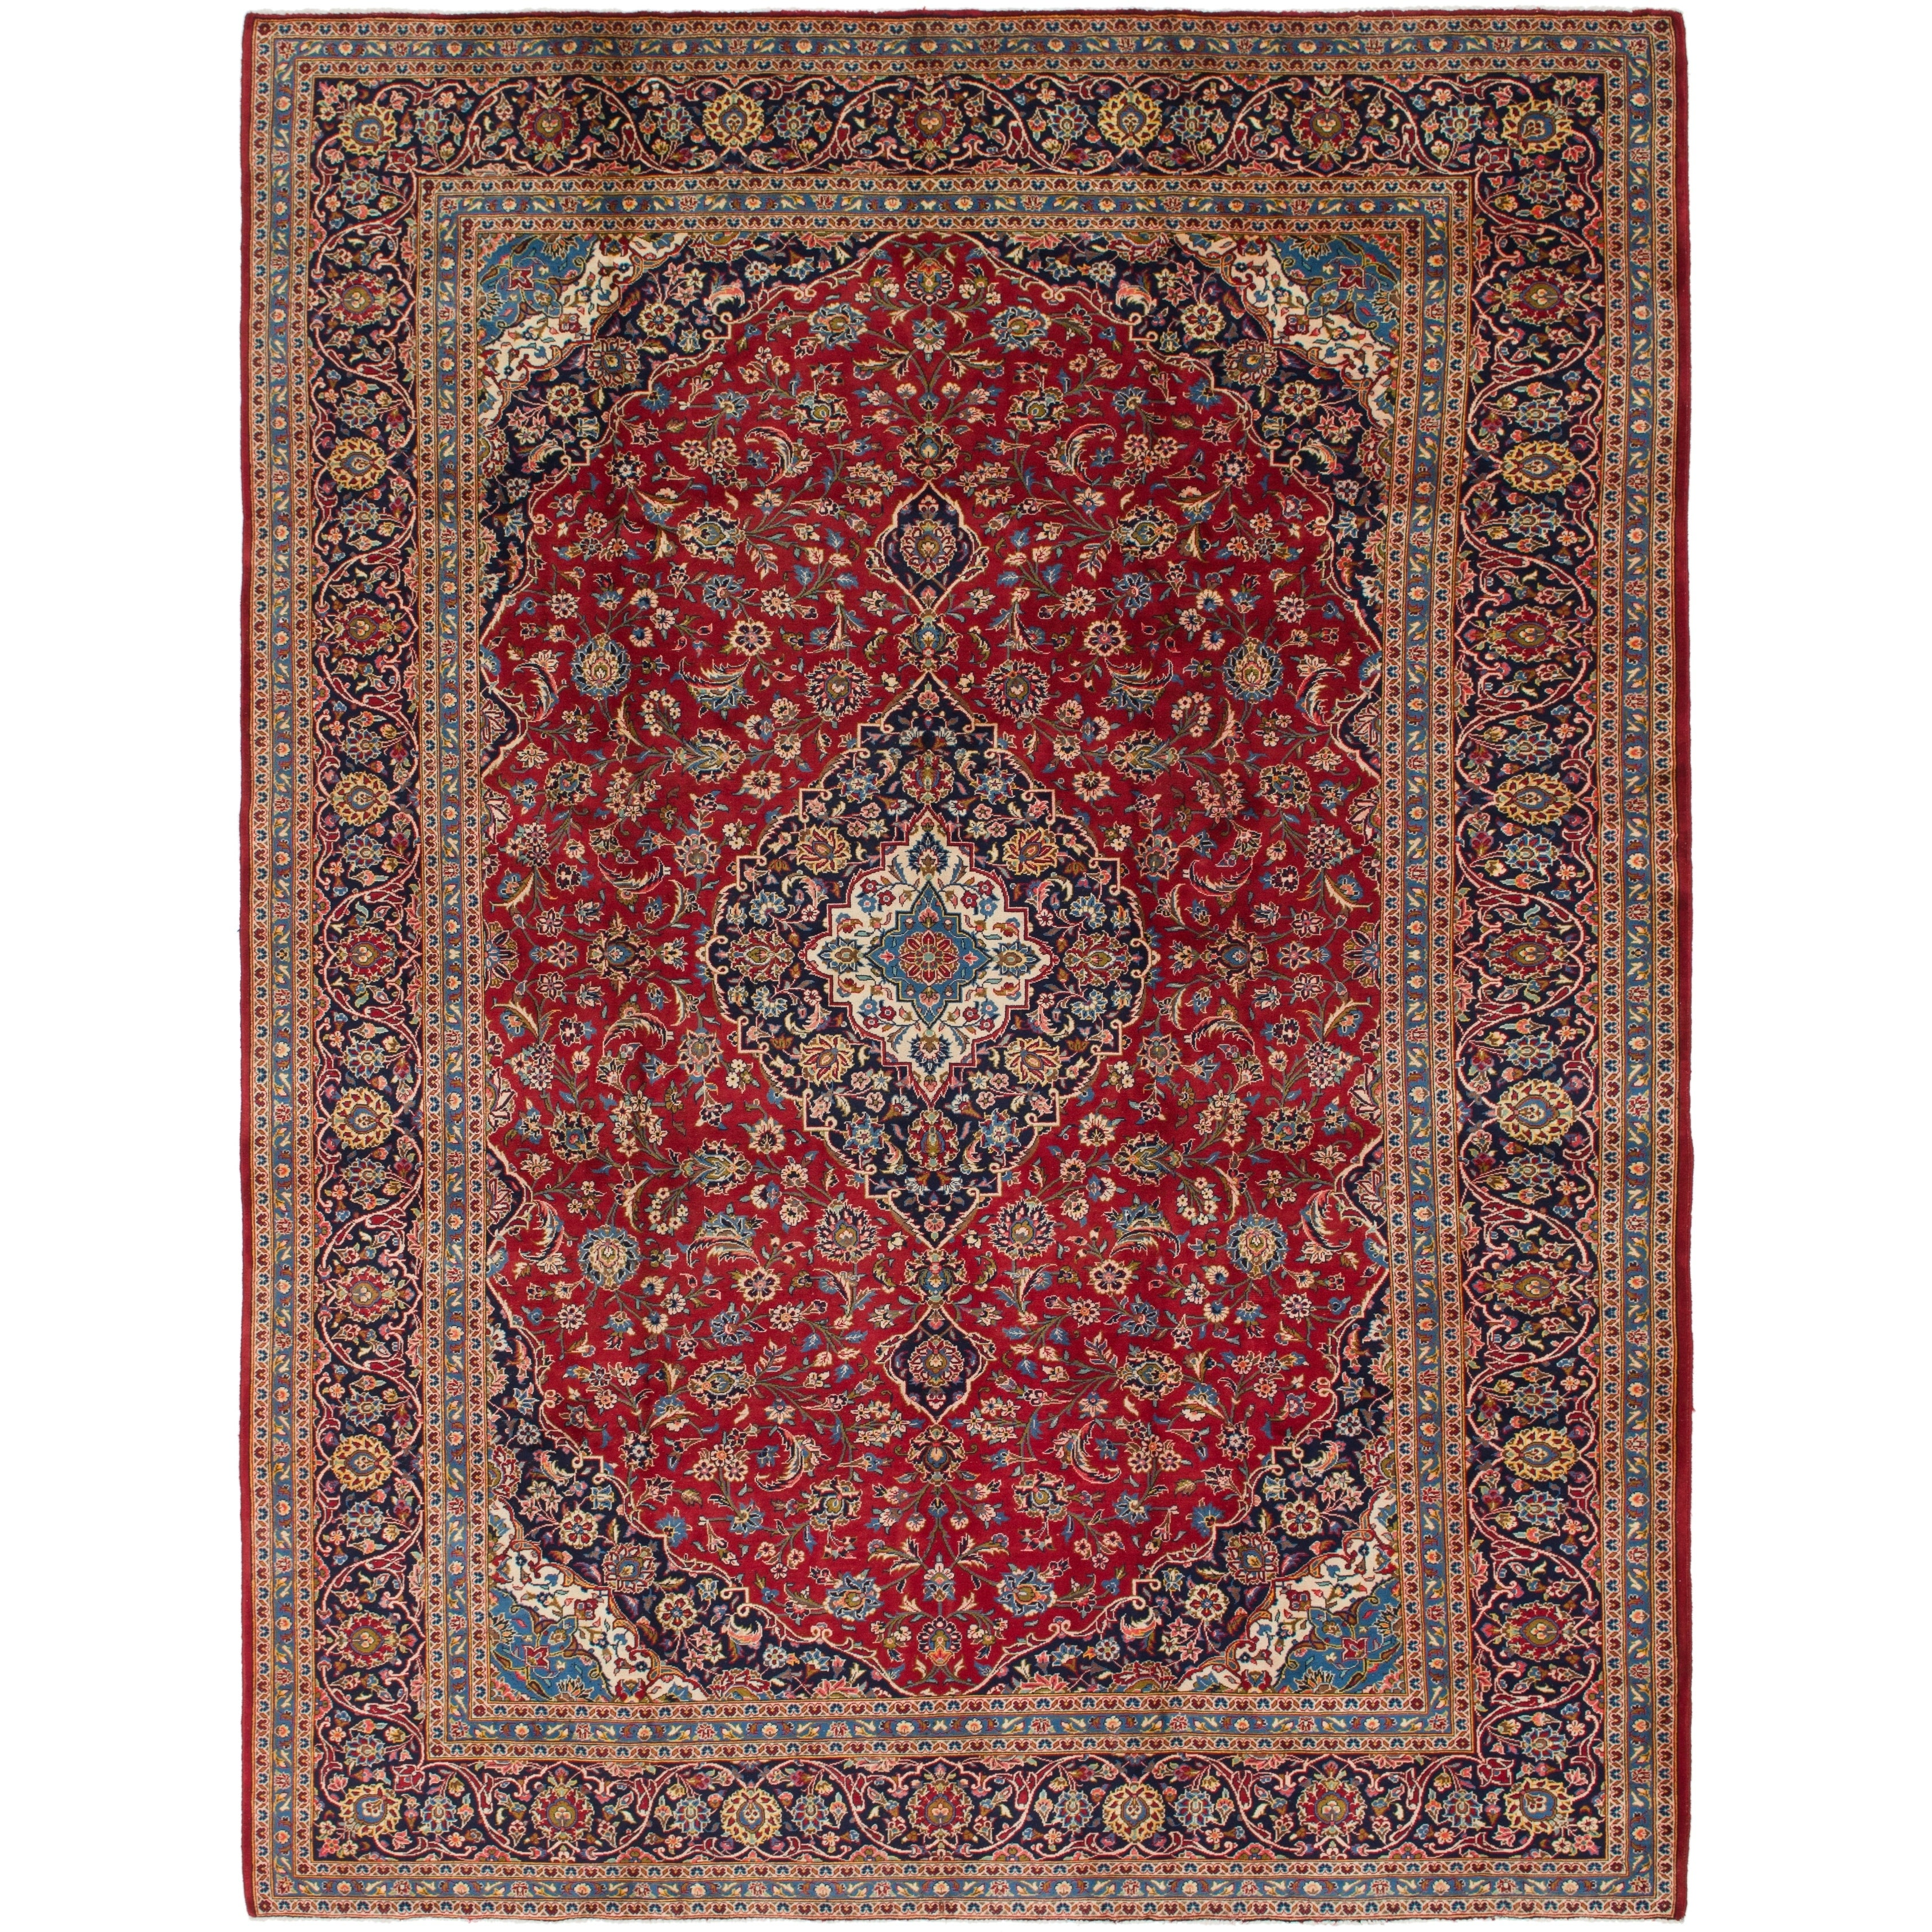 Hand Knotted Kashan Semi Antique Wool Area Rug - 9 9 x 13 (Red - 9 9 x 13)